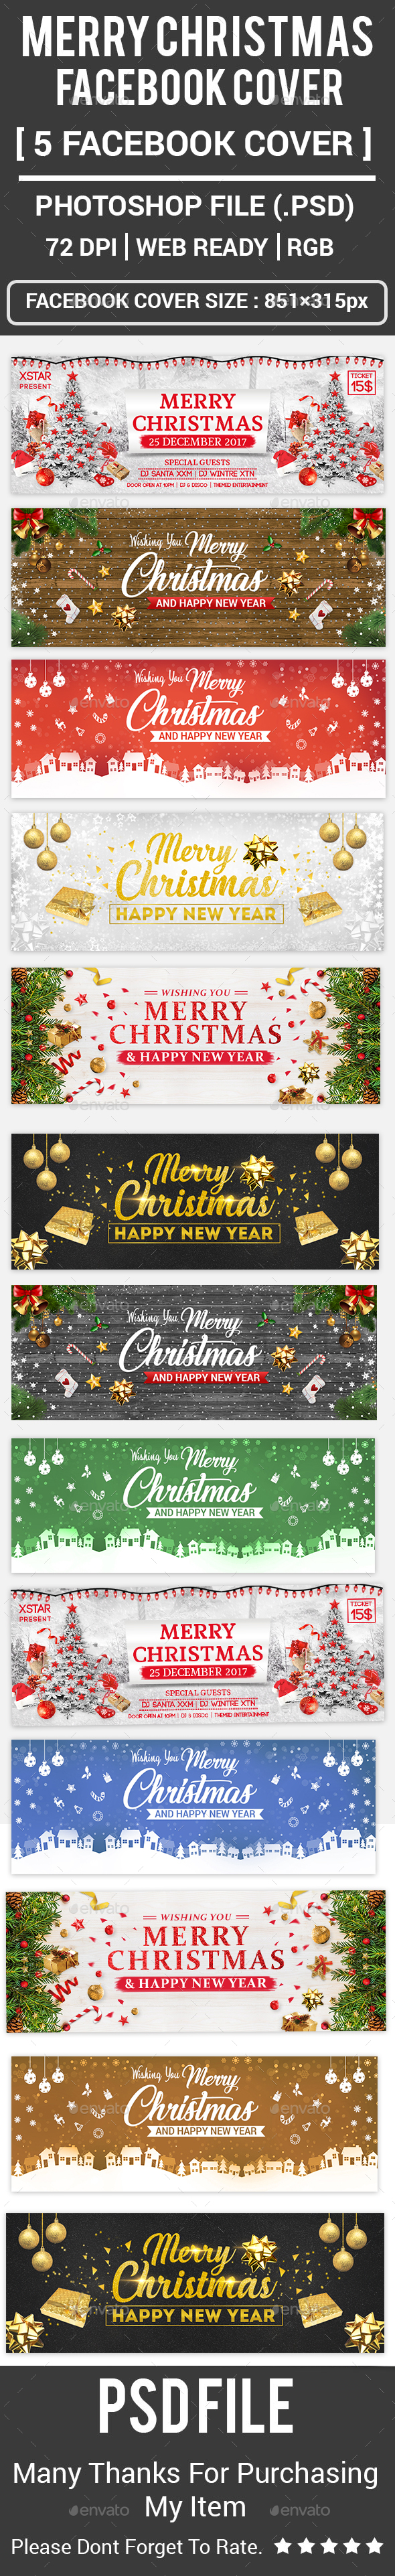 GraphicRiver Merry Christmas Facebook Covers 20904661